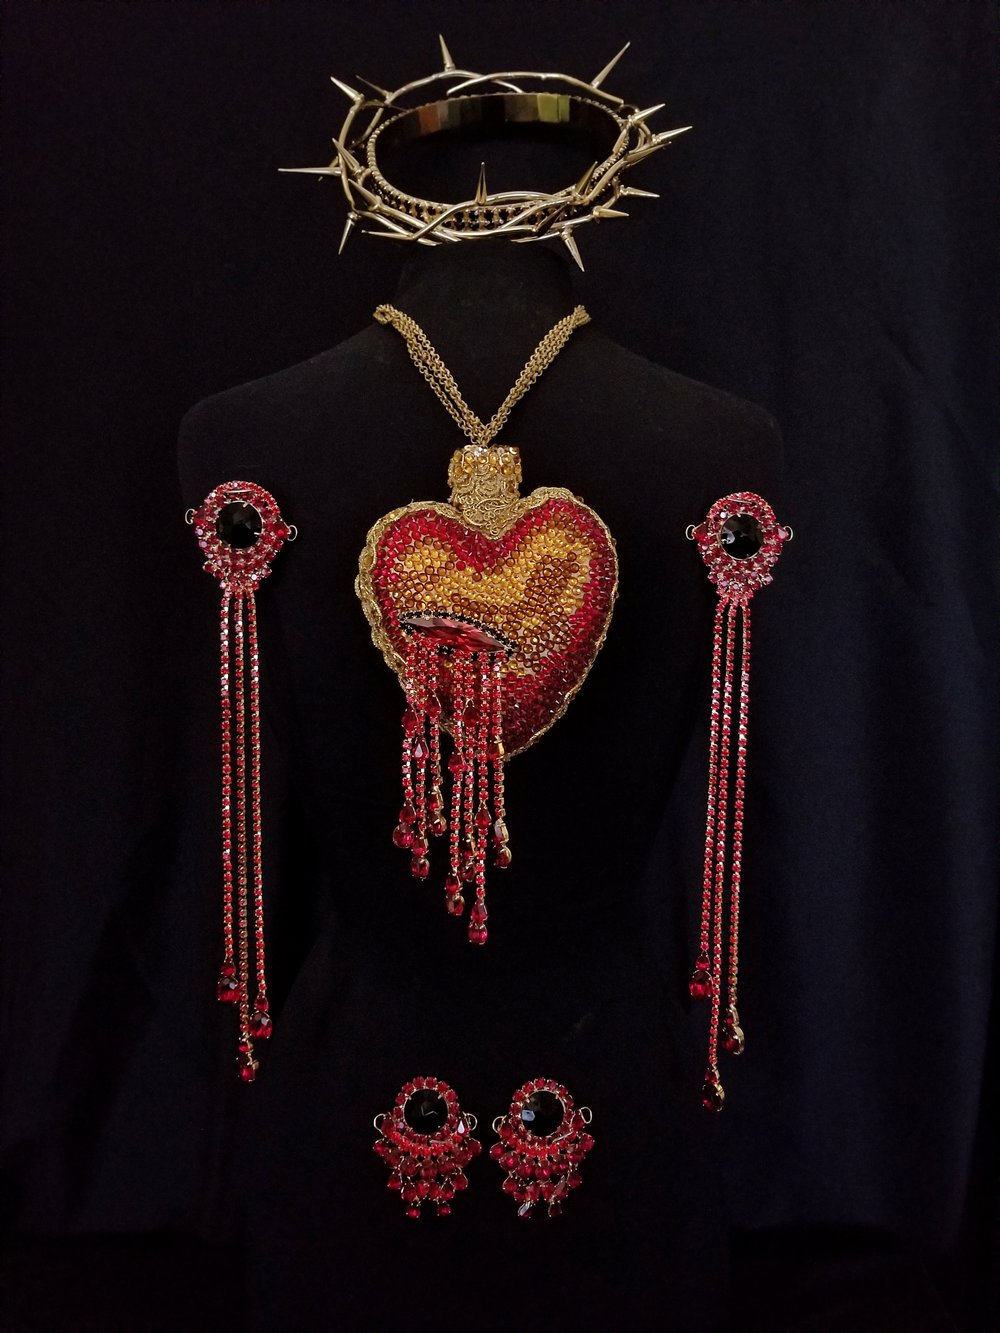 ☆ PASSION REGALIA ☆  Bespoke Sacred Heart pendant, palm stigmata with blood drop fringe, feet stigmata, and black diamond crown of thorns.    Light Siam, Siam, Garnet, and black diamond Swarovski and Preciosa crystal with gold trim and 24k gold plate.